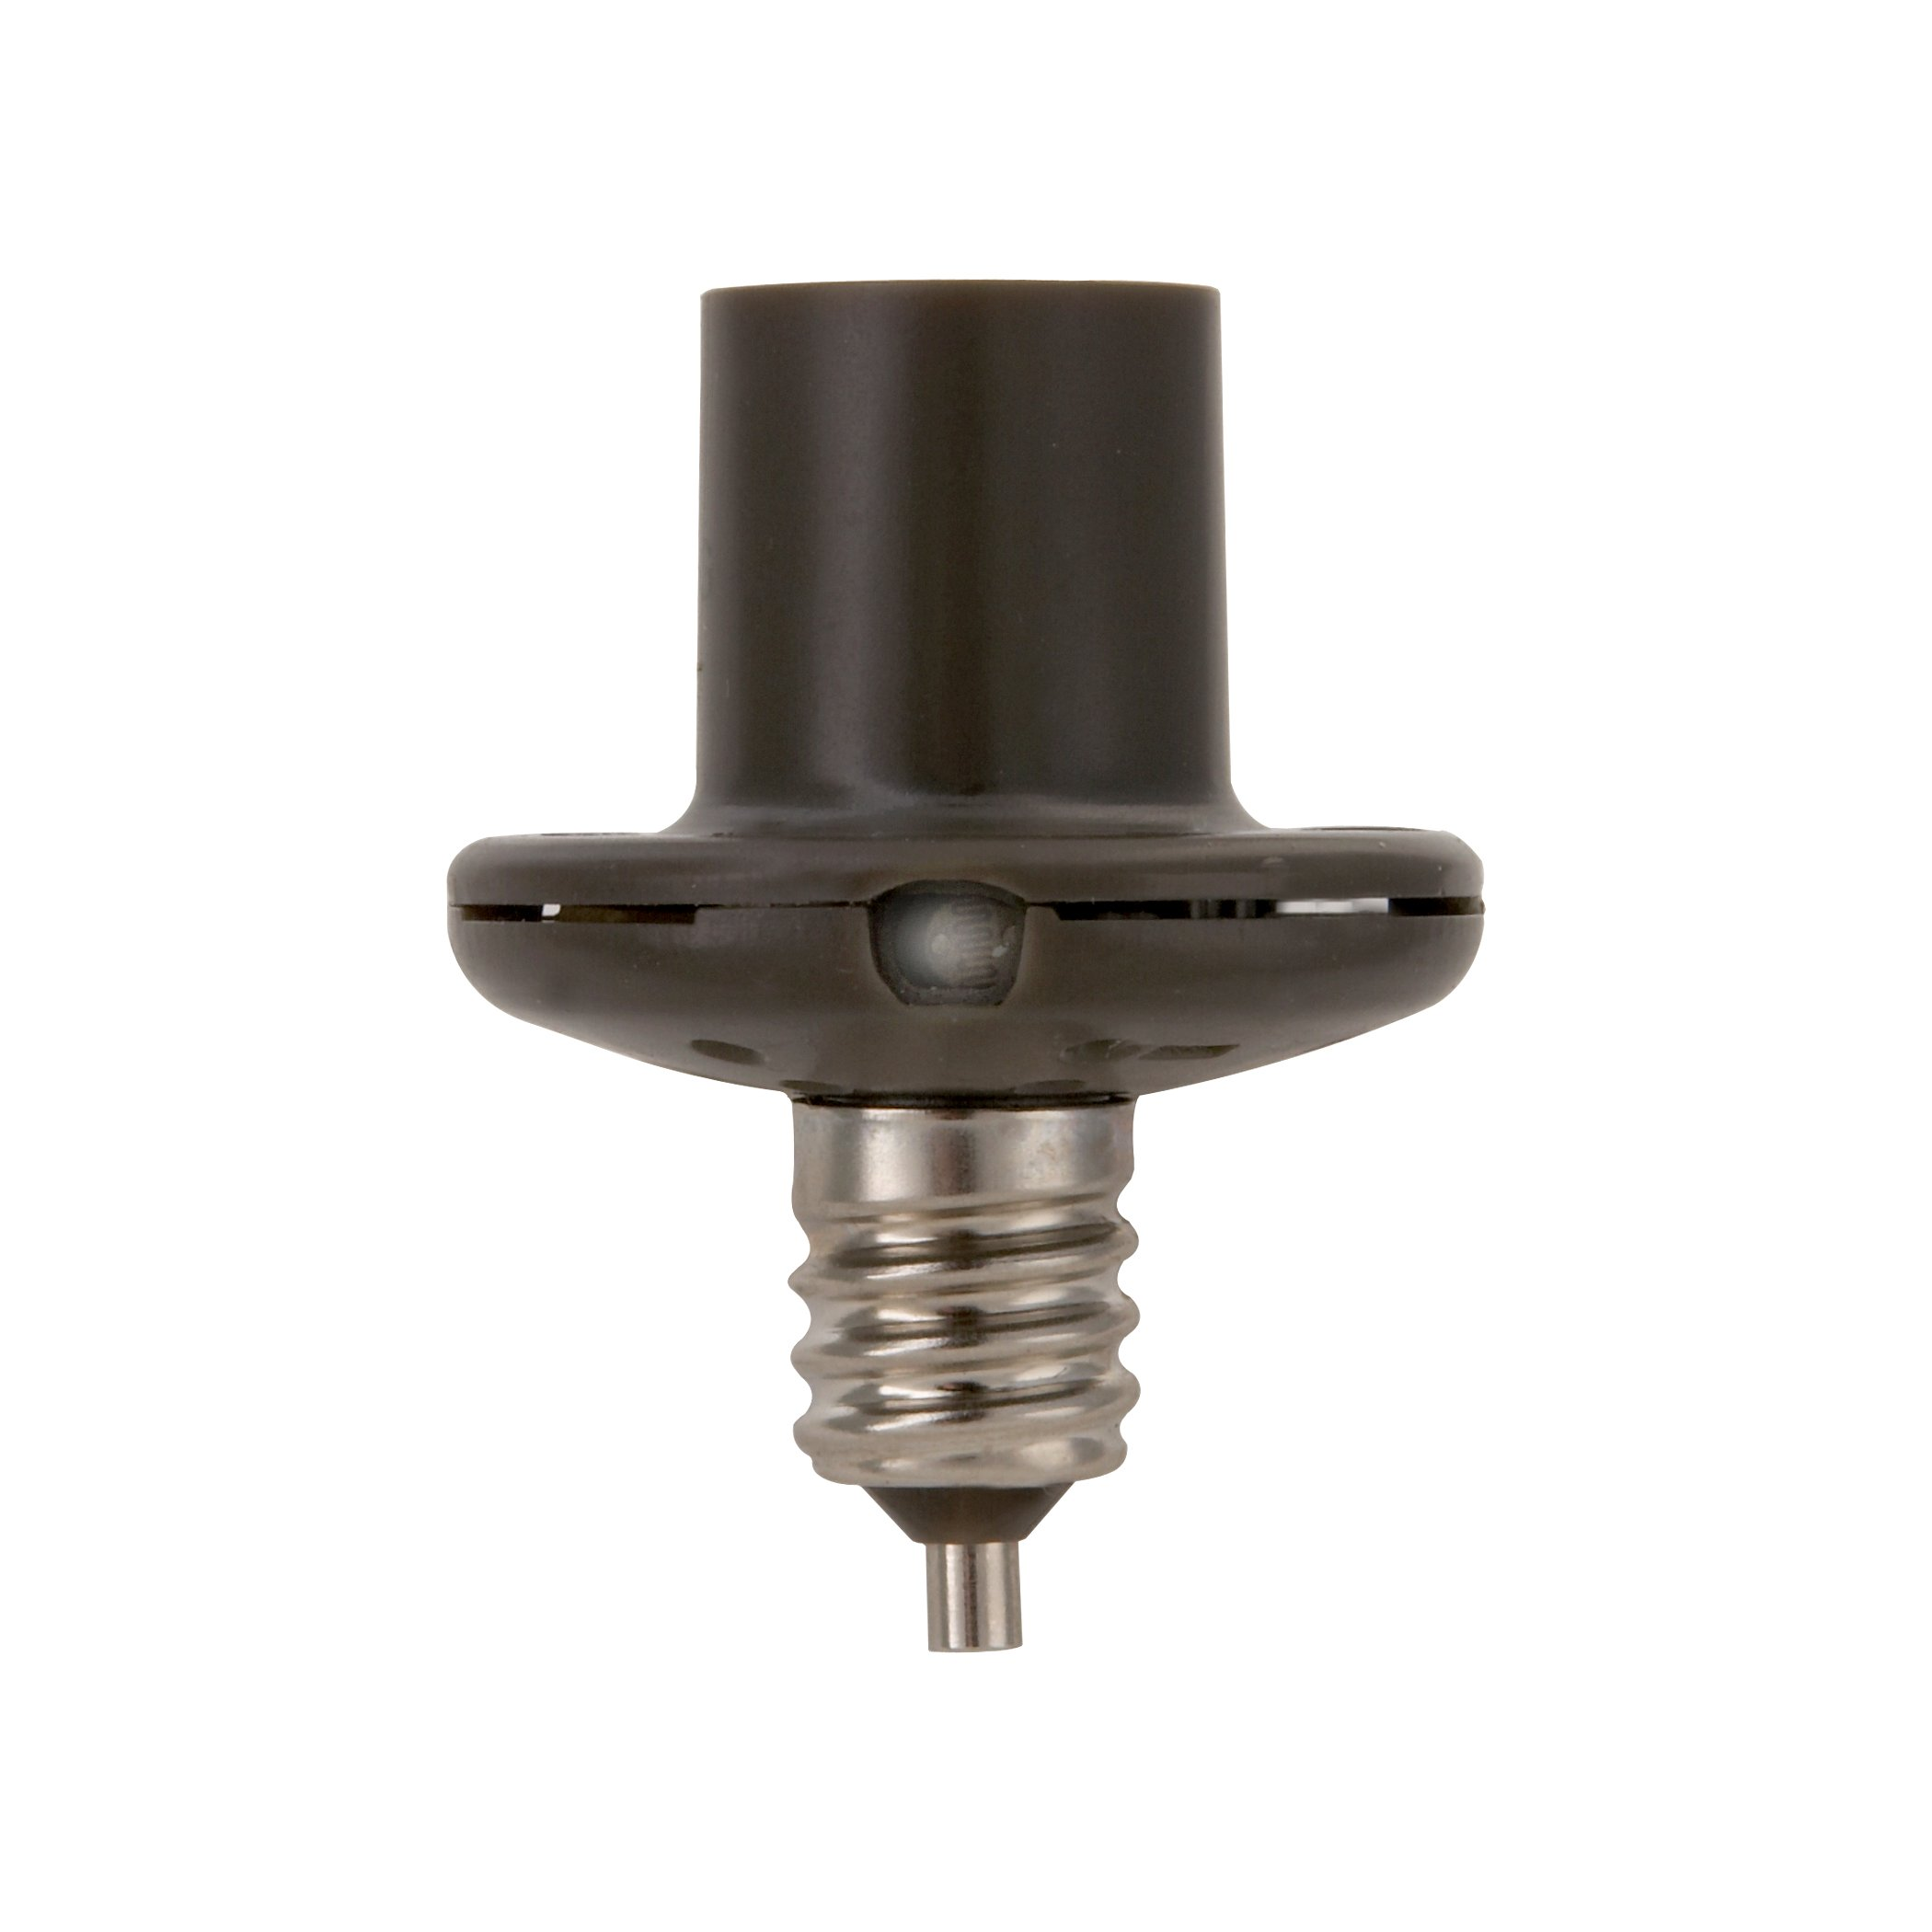 AmerTac SLC2BCB3 60-Watt Candelabra Light Control, Bronze, 3-Pack